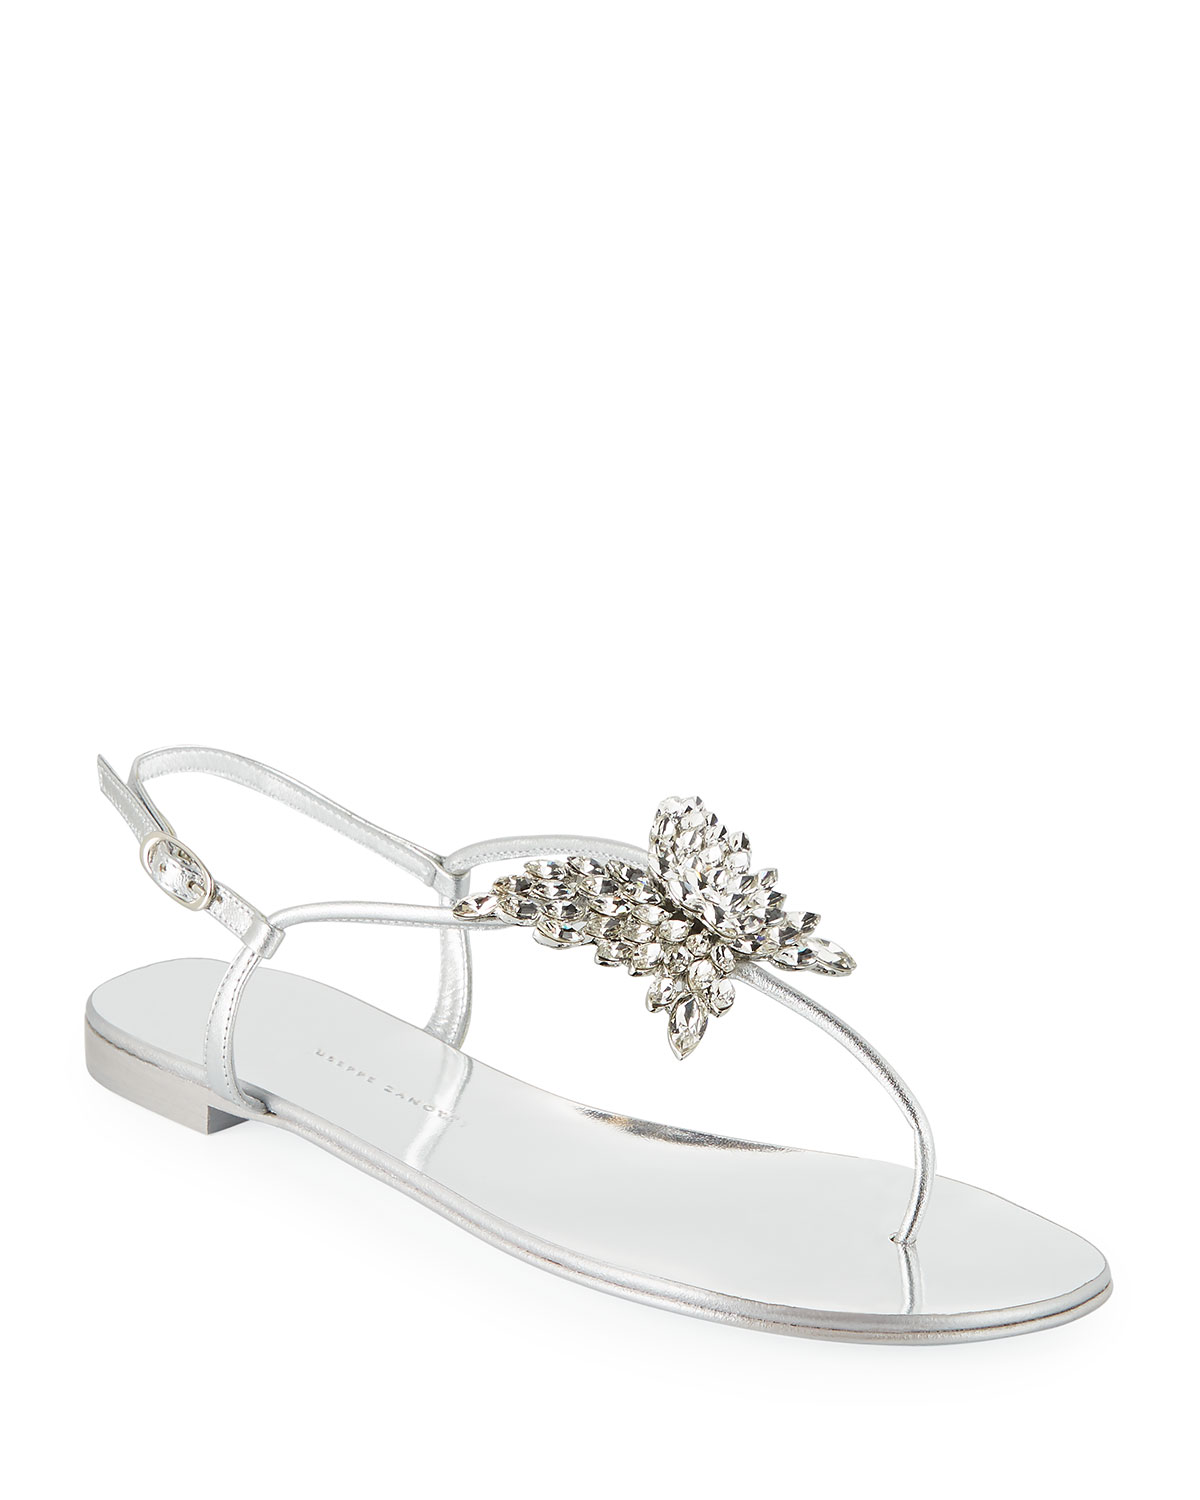 Giuseppe Zanotti Leathers FLAT METALLIC LEATHER THONG SANDALS WITH BUTTERFLY